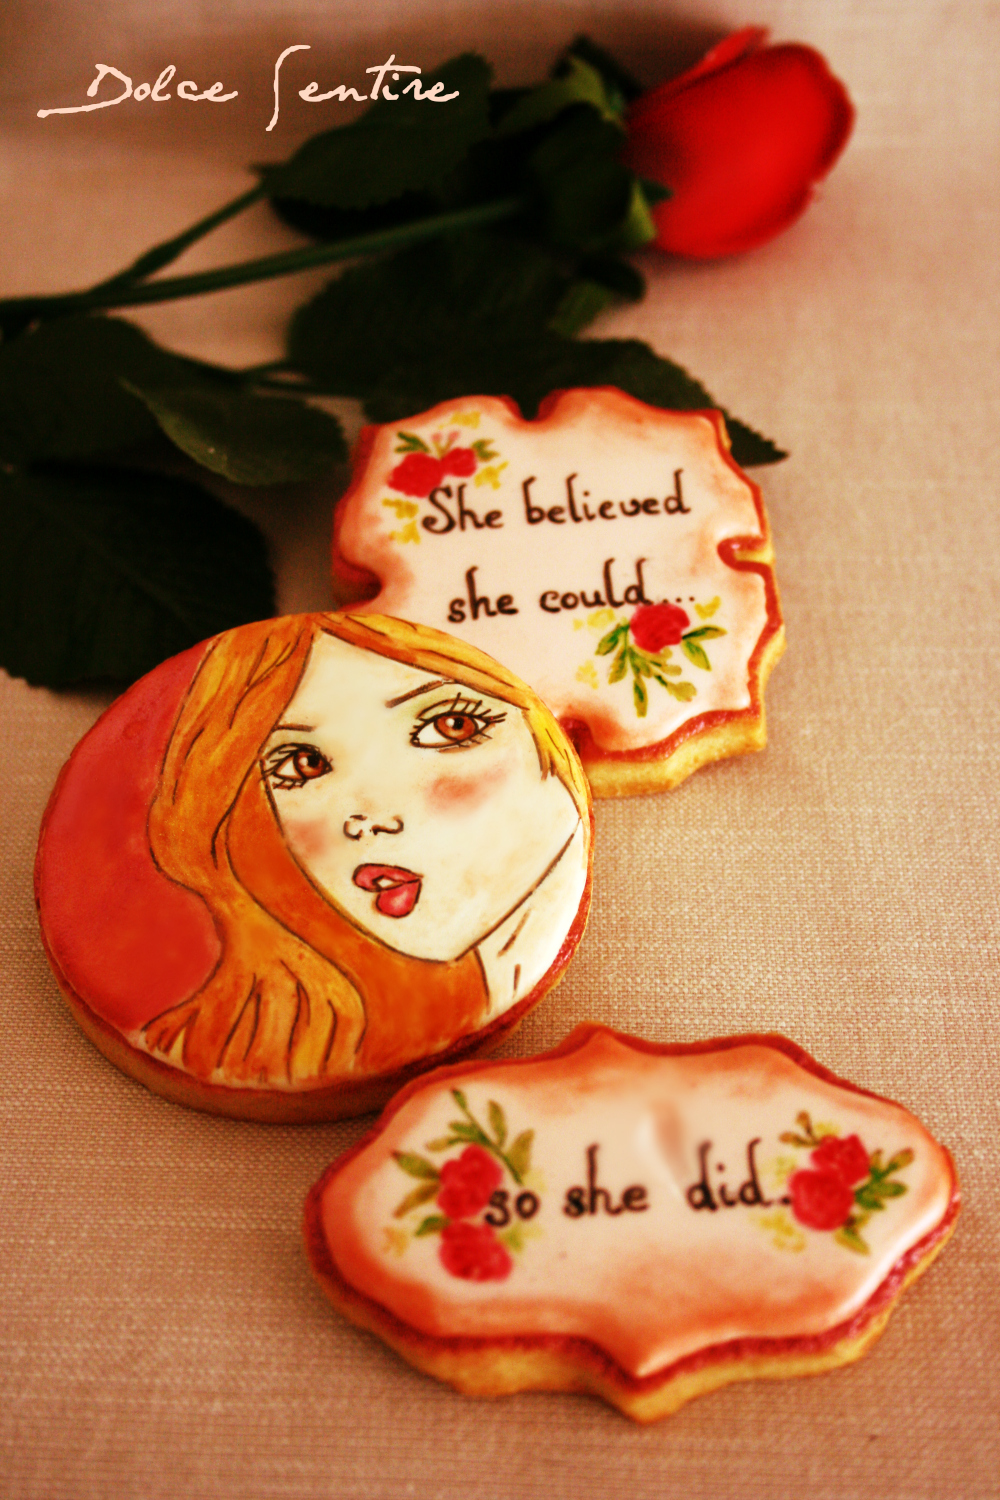 Galletas del Día Internacional de la Mujer (Post Express) International Women's Day Cookies